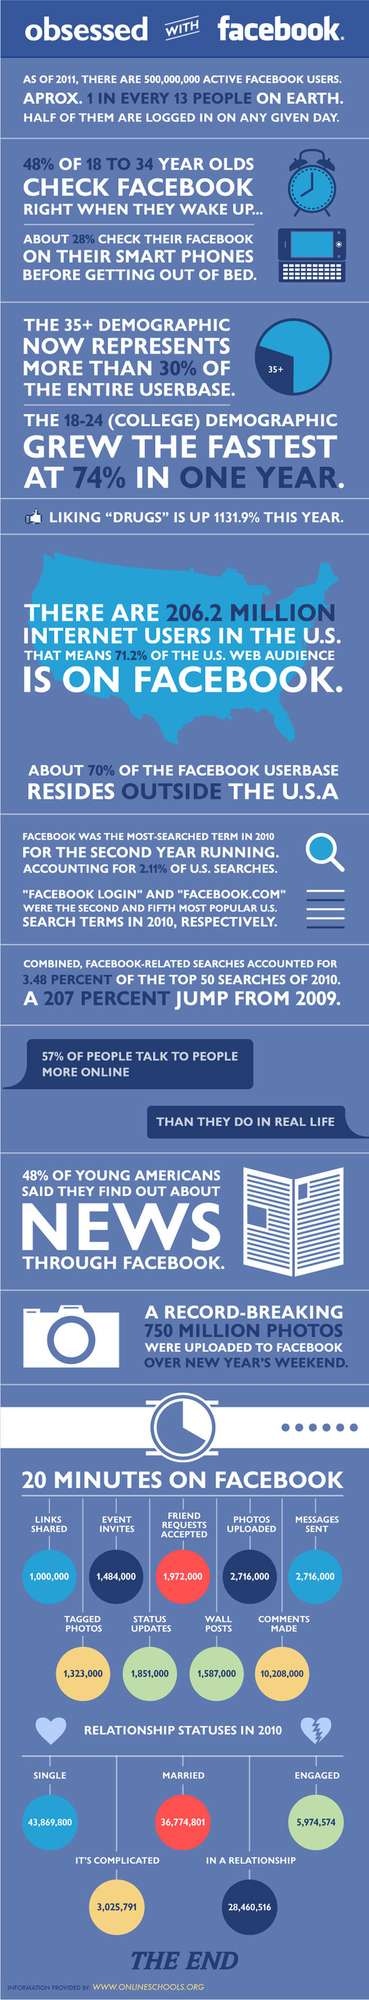 Our Obsession With Facebook